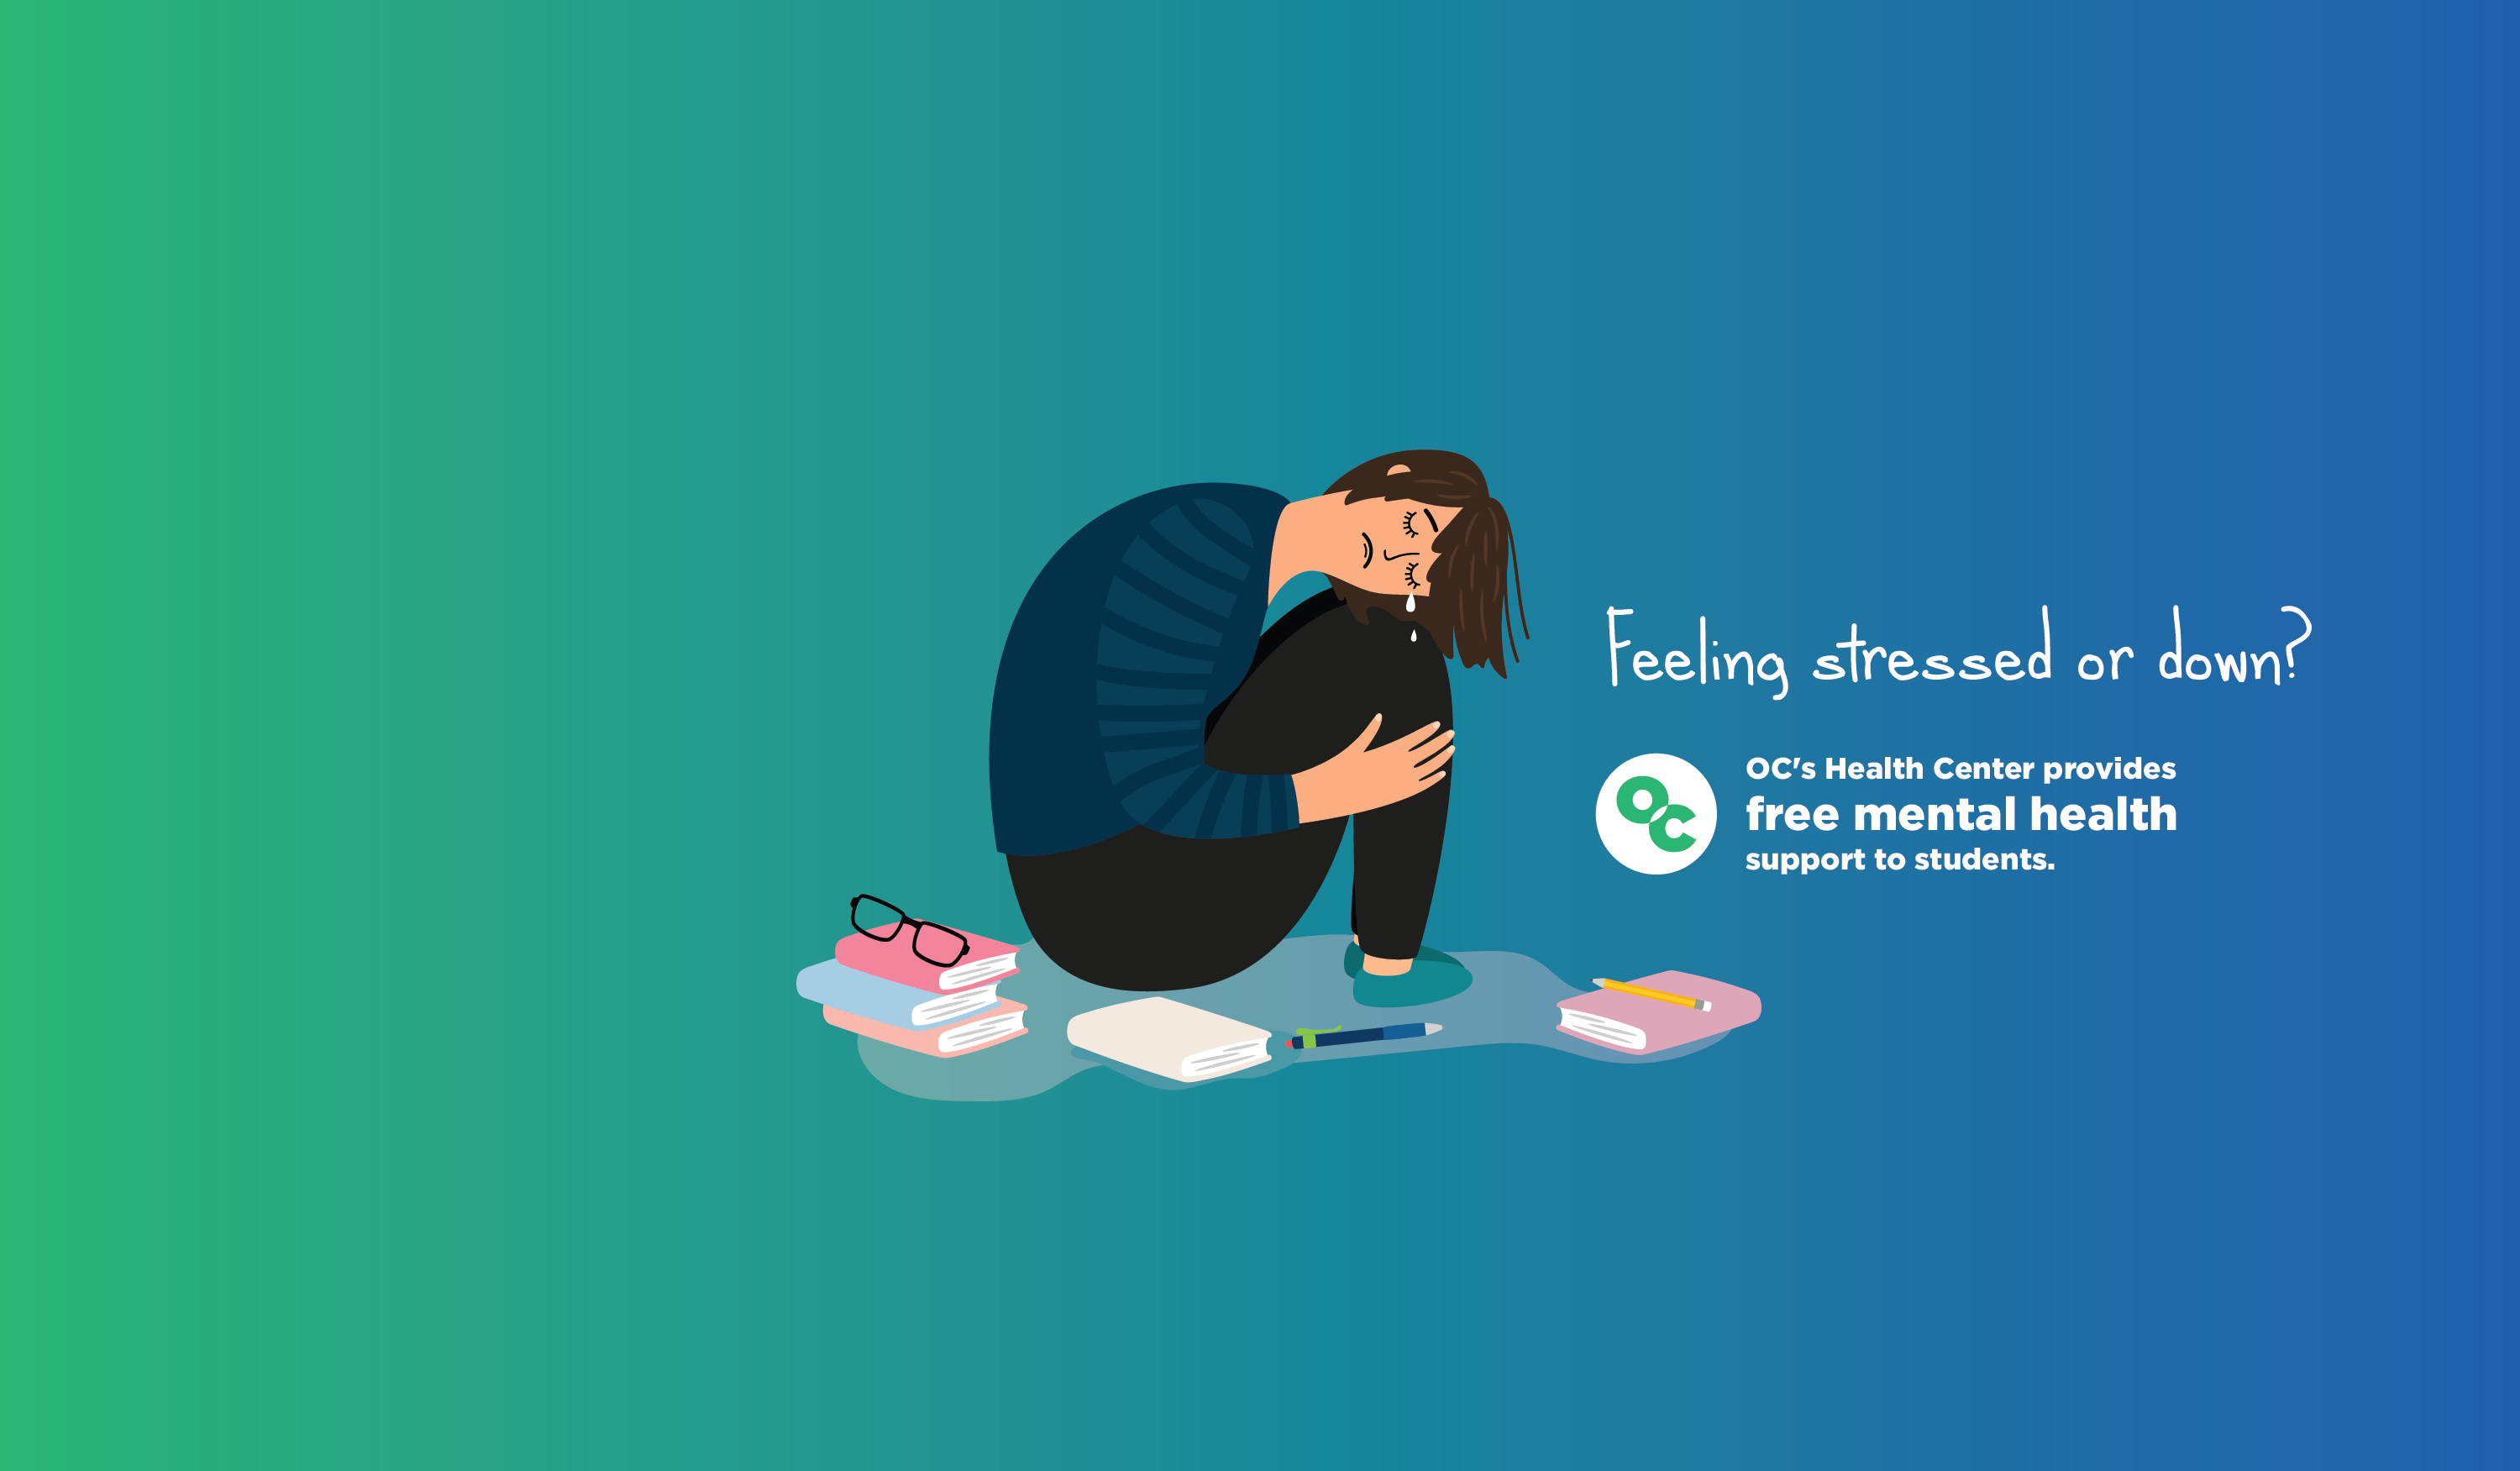 Illustration of a person crying with text that reads: Feeling stressed or down? Ox's Health Center provides free mental health support to students.